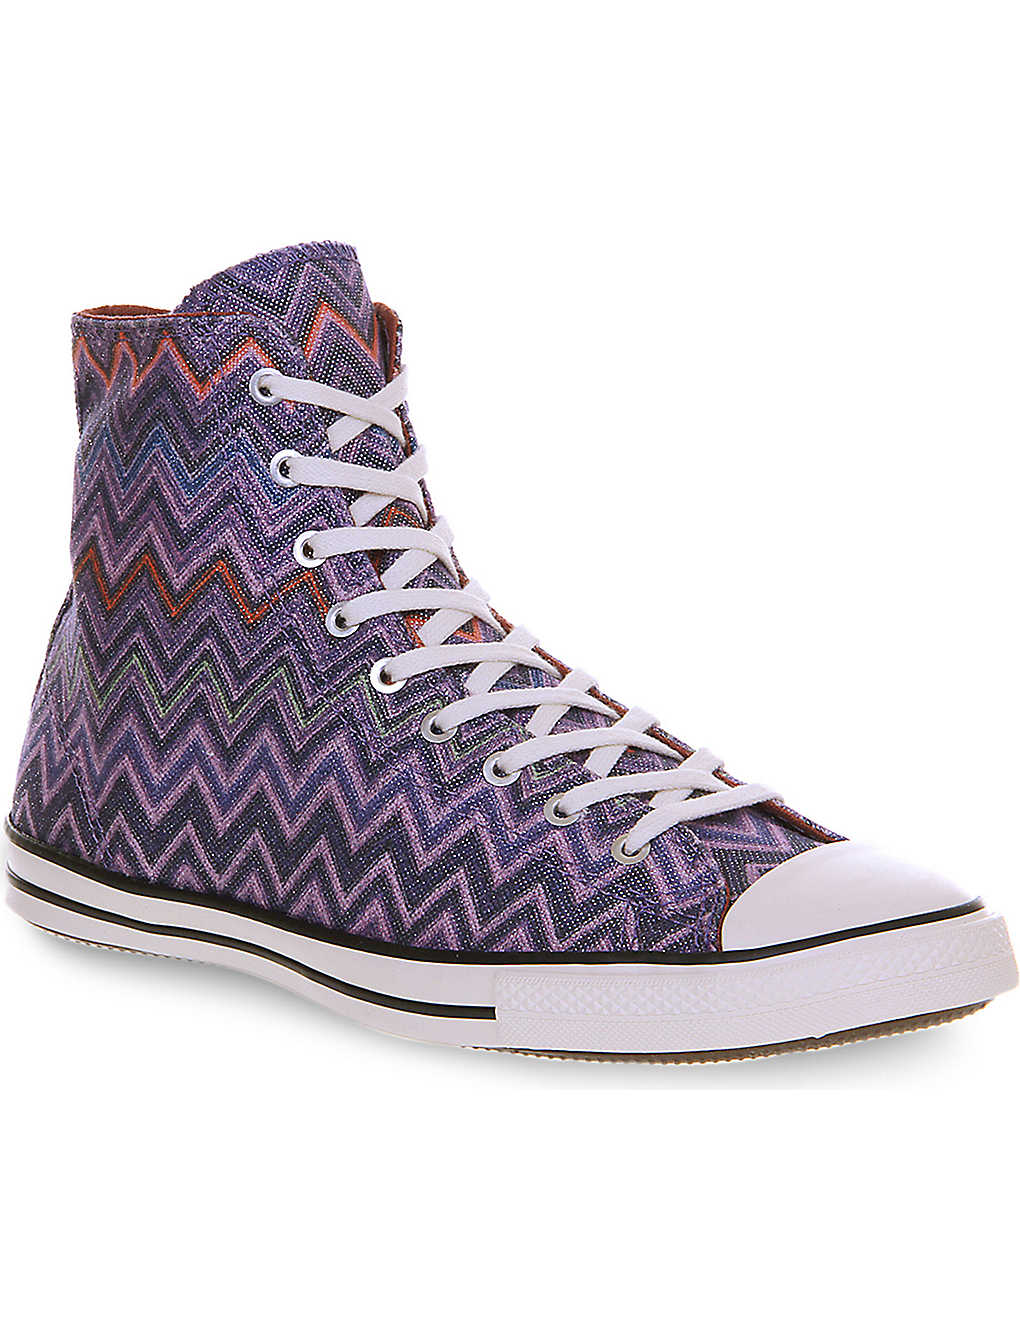 CONVERSE Missoni Fancy hi top trainers |